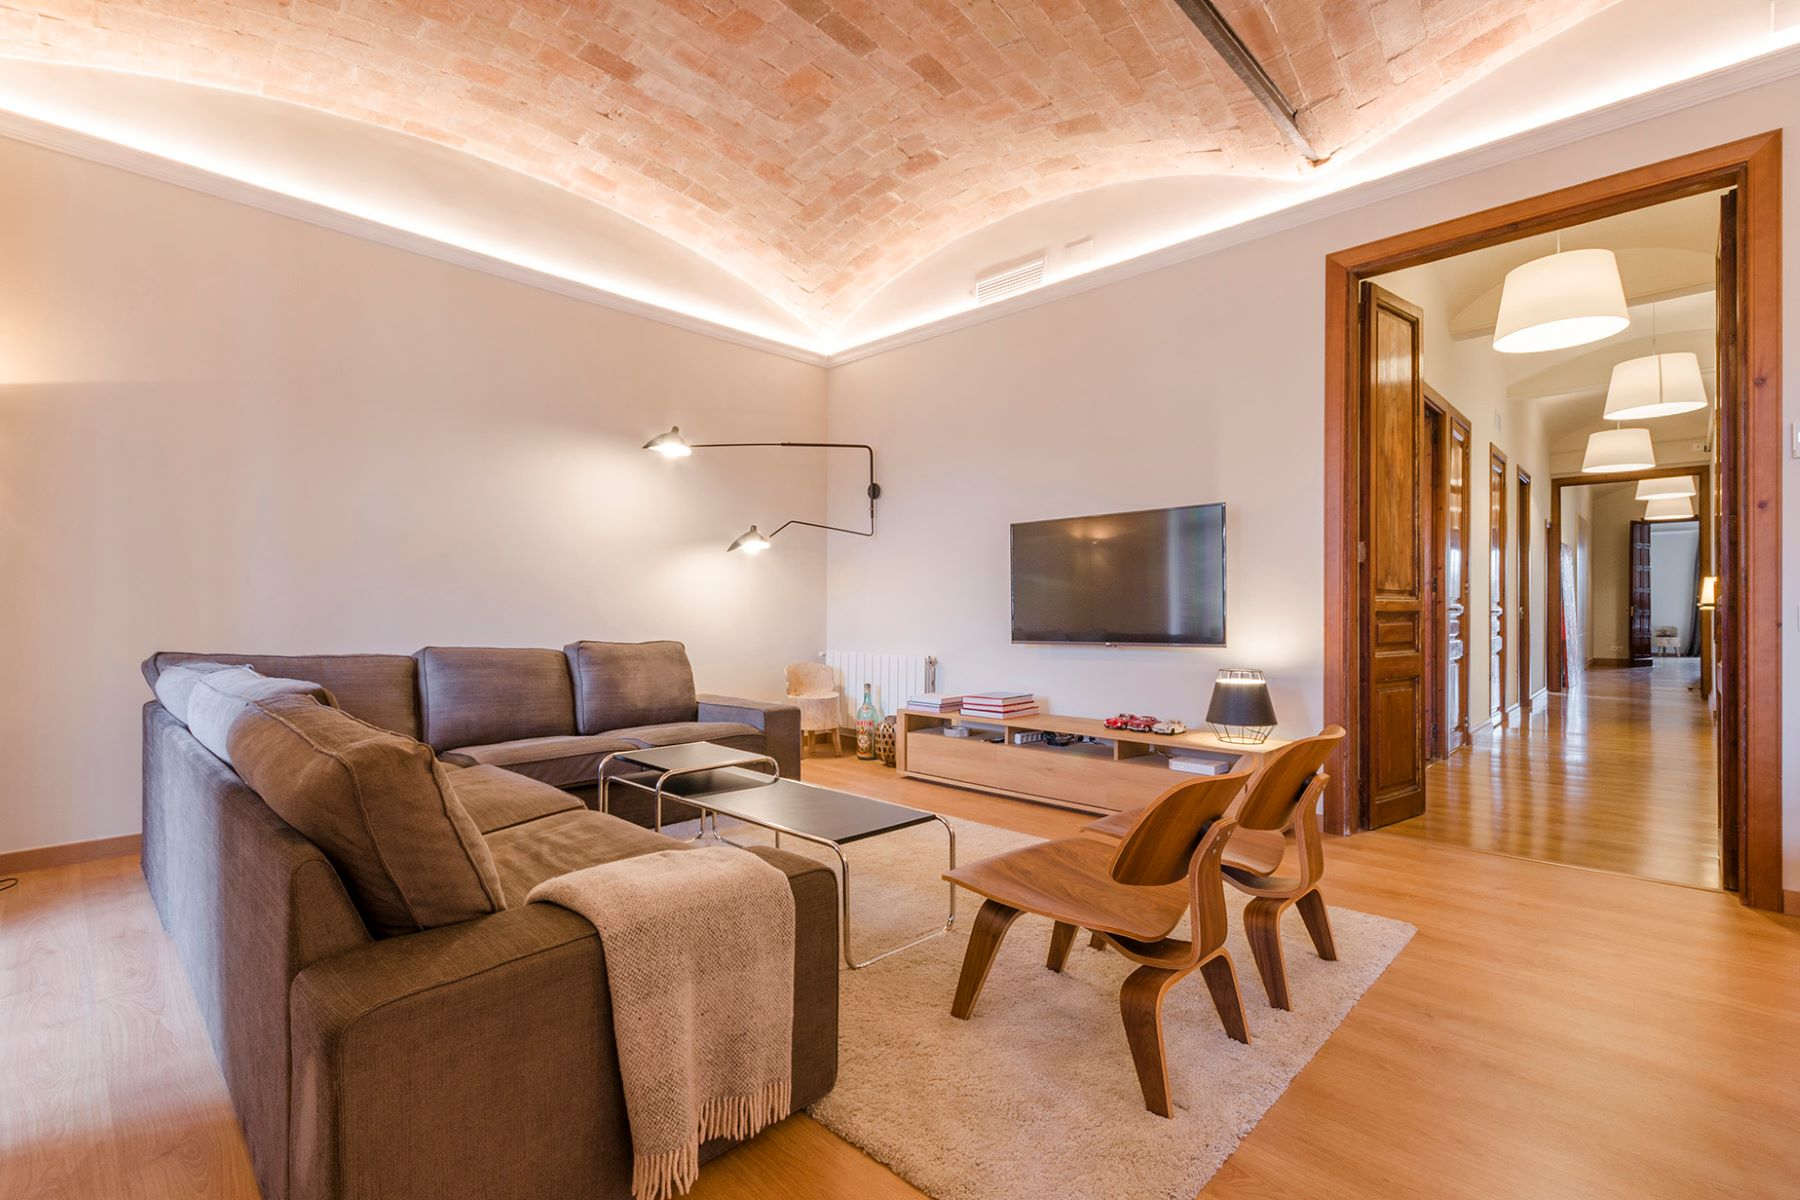 Apartment for Sale at Extraordinary property in the Eixample district Barcelona City, Barcelona, 08007 Spain